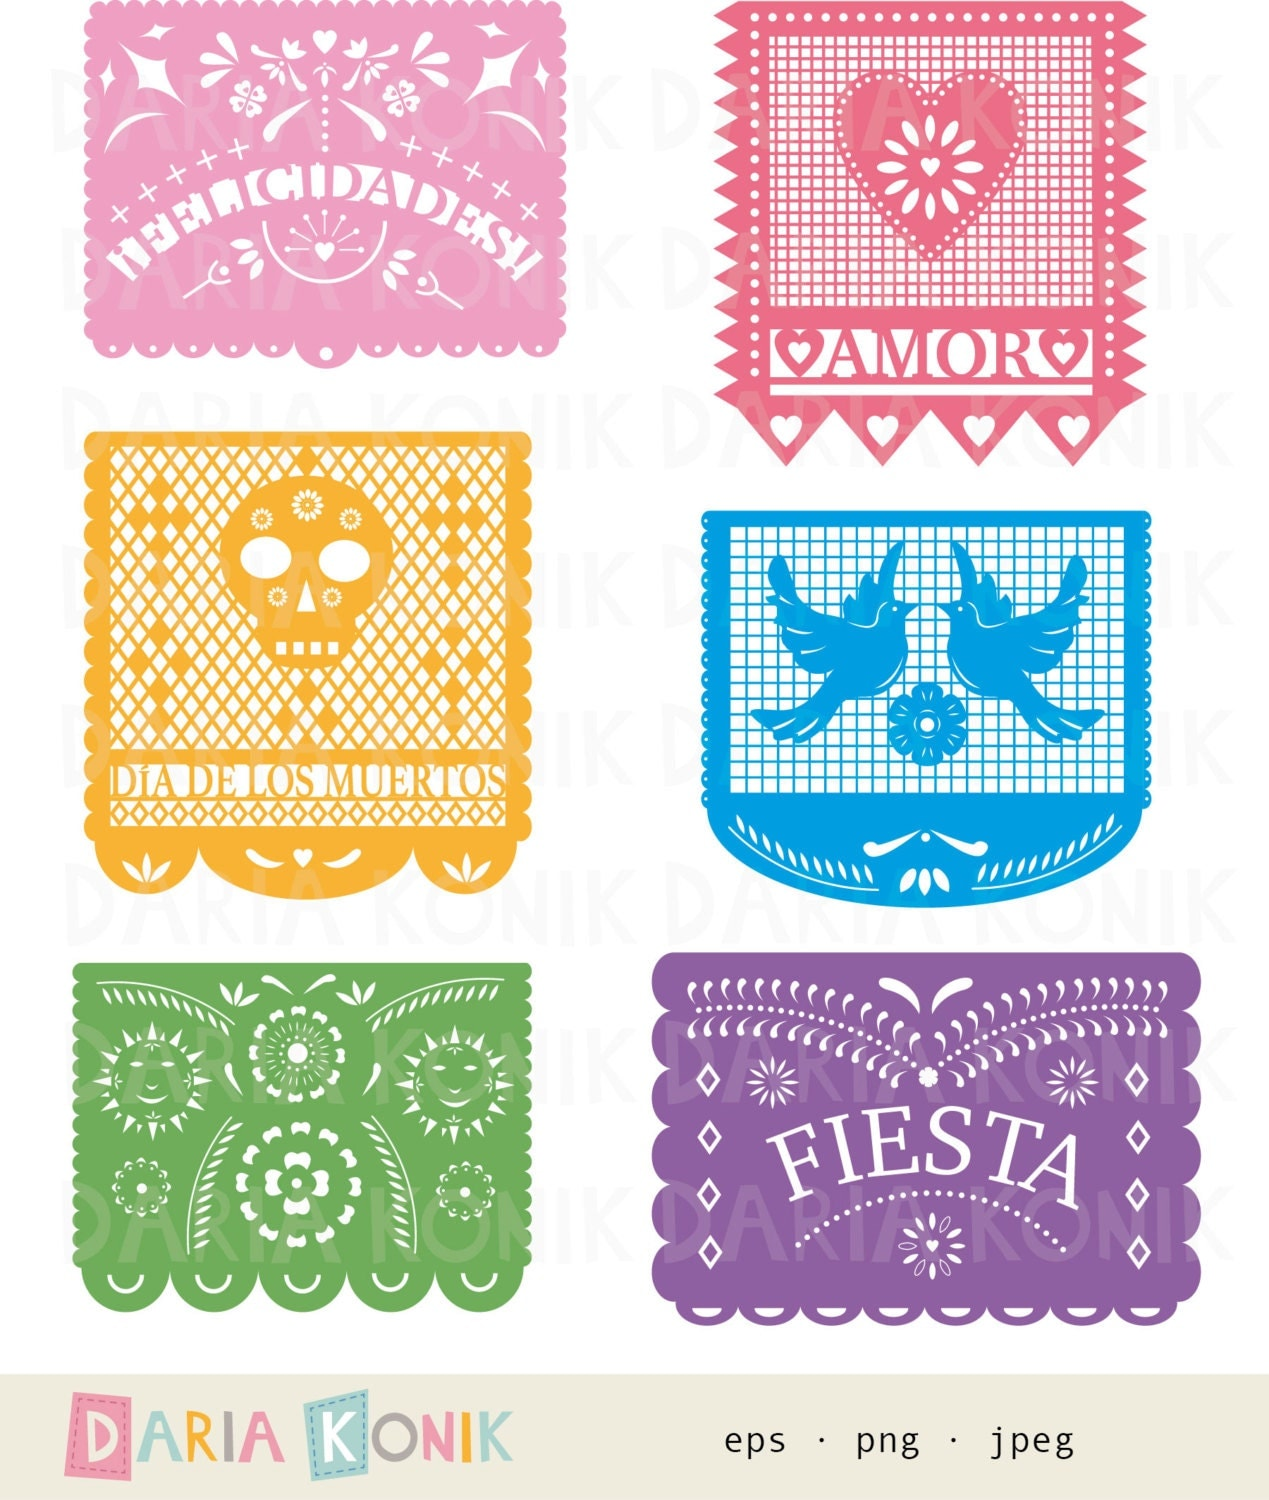 papel picado clipart - photo #9